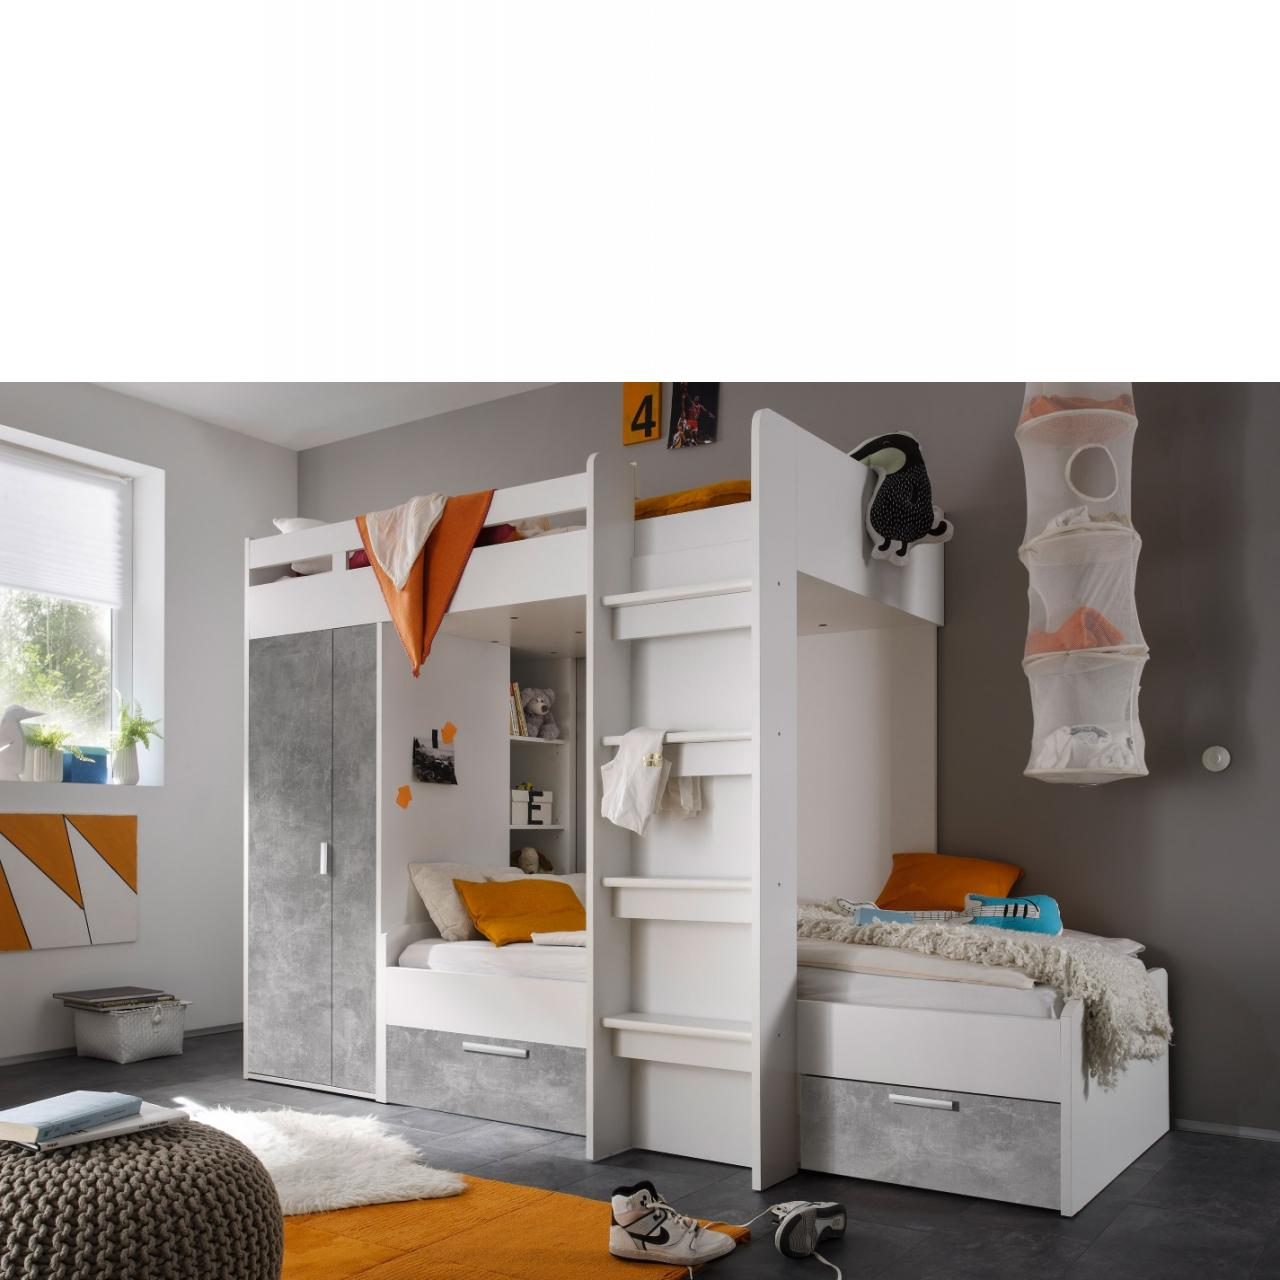 kinderzimmerm bel online kaufen m bel j hnichen center gmbh. Black Bedroom Furniture Sets. Home Design Ideas